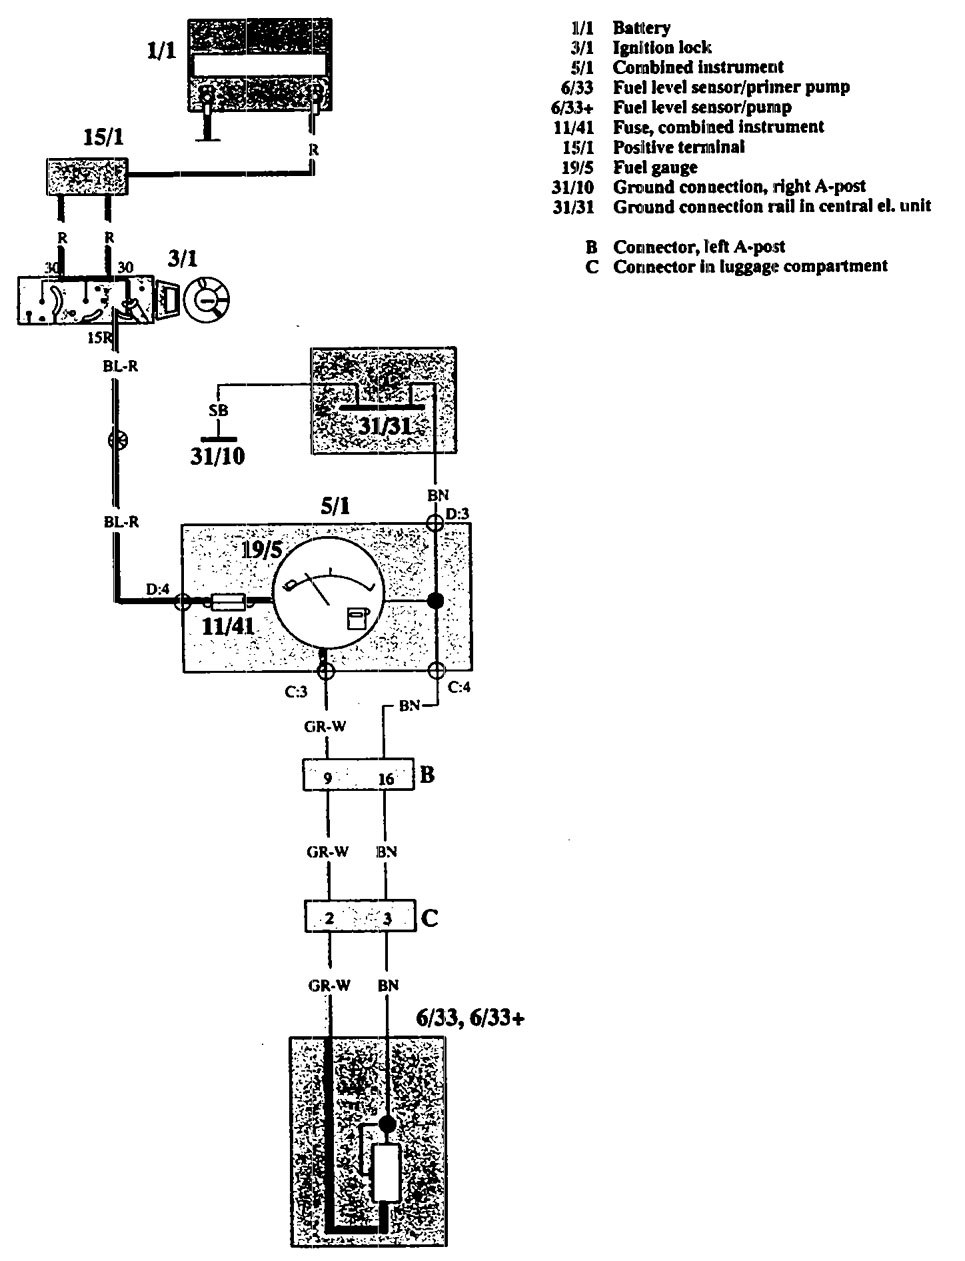 Volvo 740 1992 Wiring Diagrams Fuel Warning